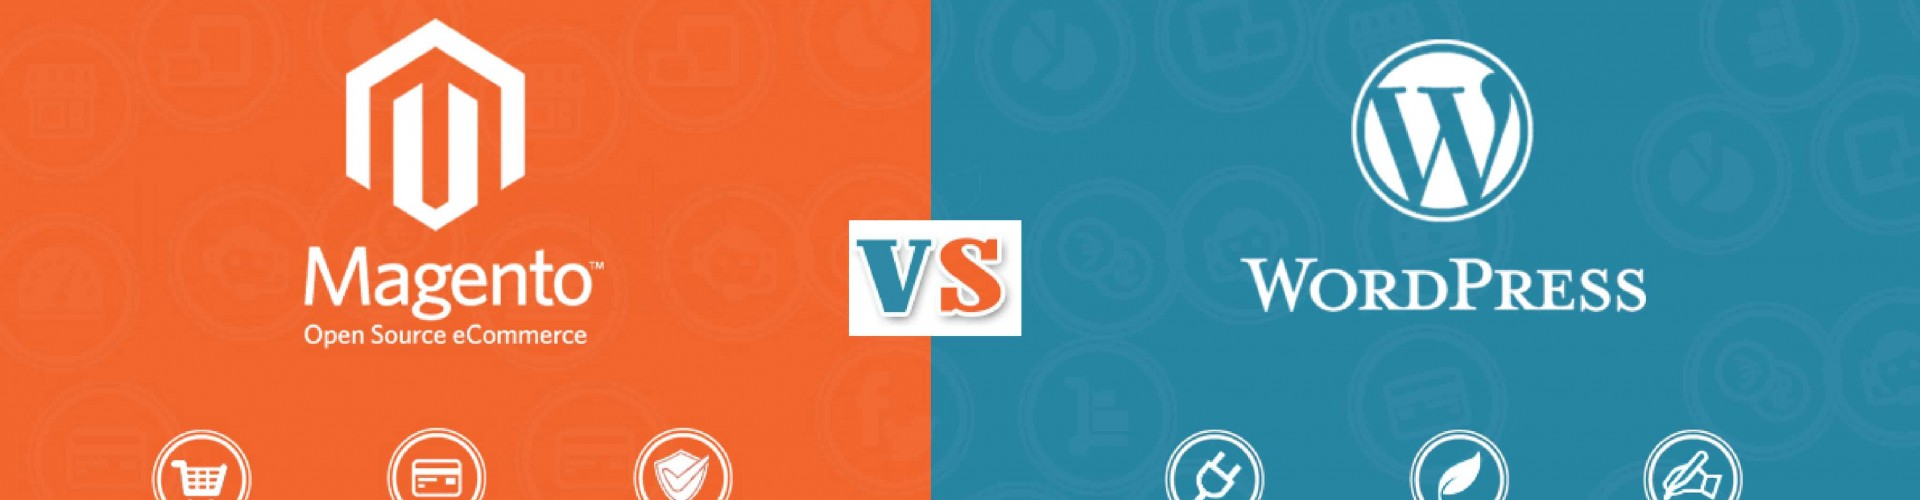 Making up your mind: what is better Magento or WordPress?